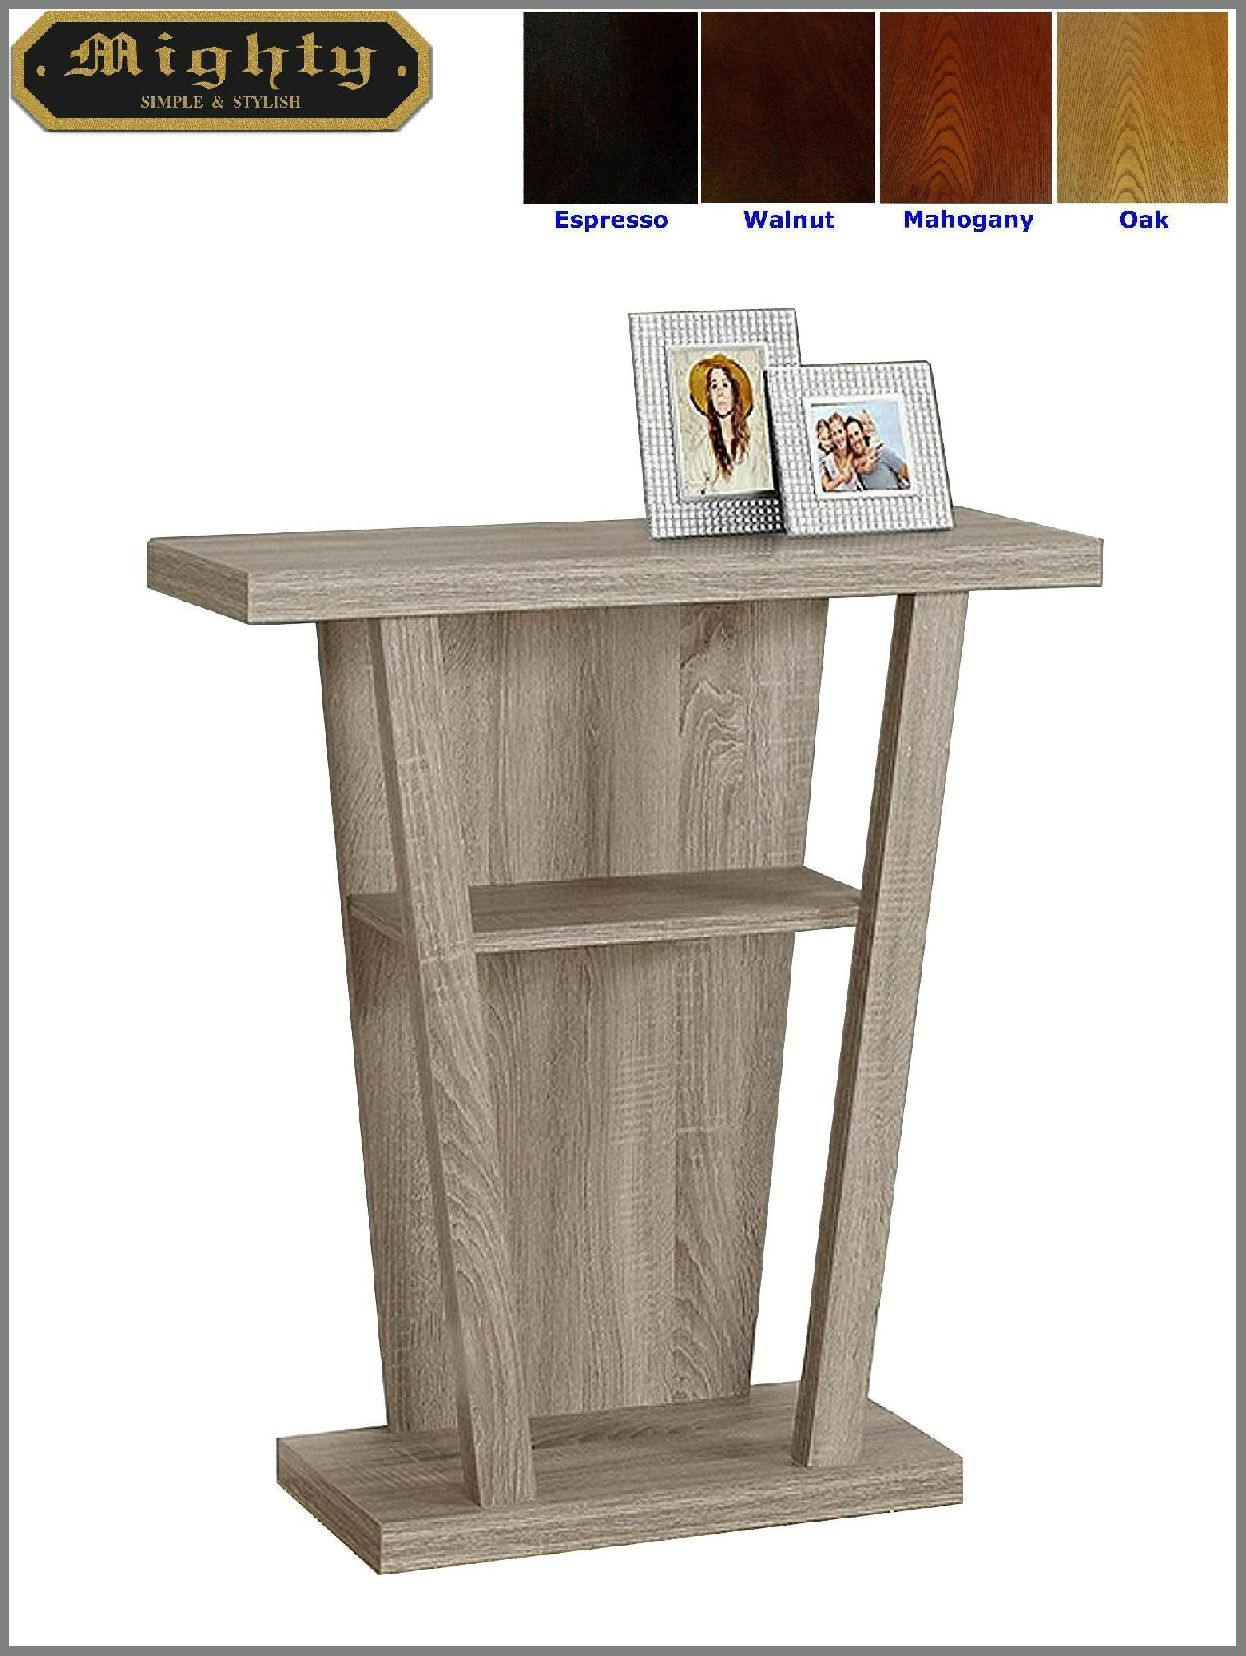 modern wooden tier hall console entrance accent table mighty wood college dorm accessories dining chairs black and brown end tables pottery barn set cute chair high bar white